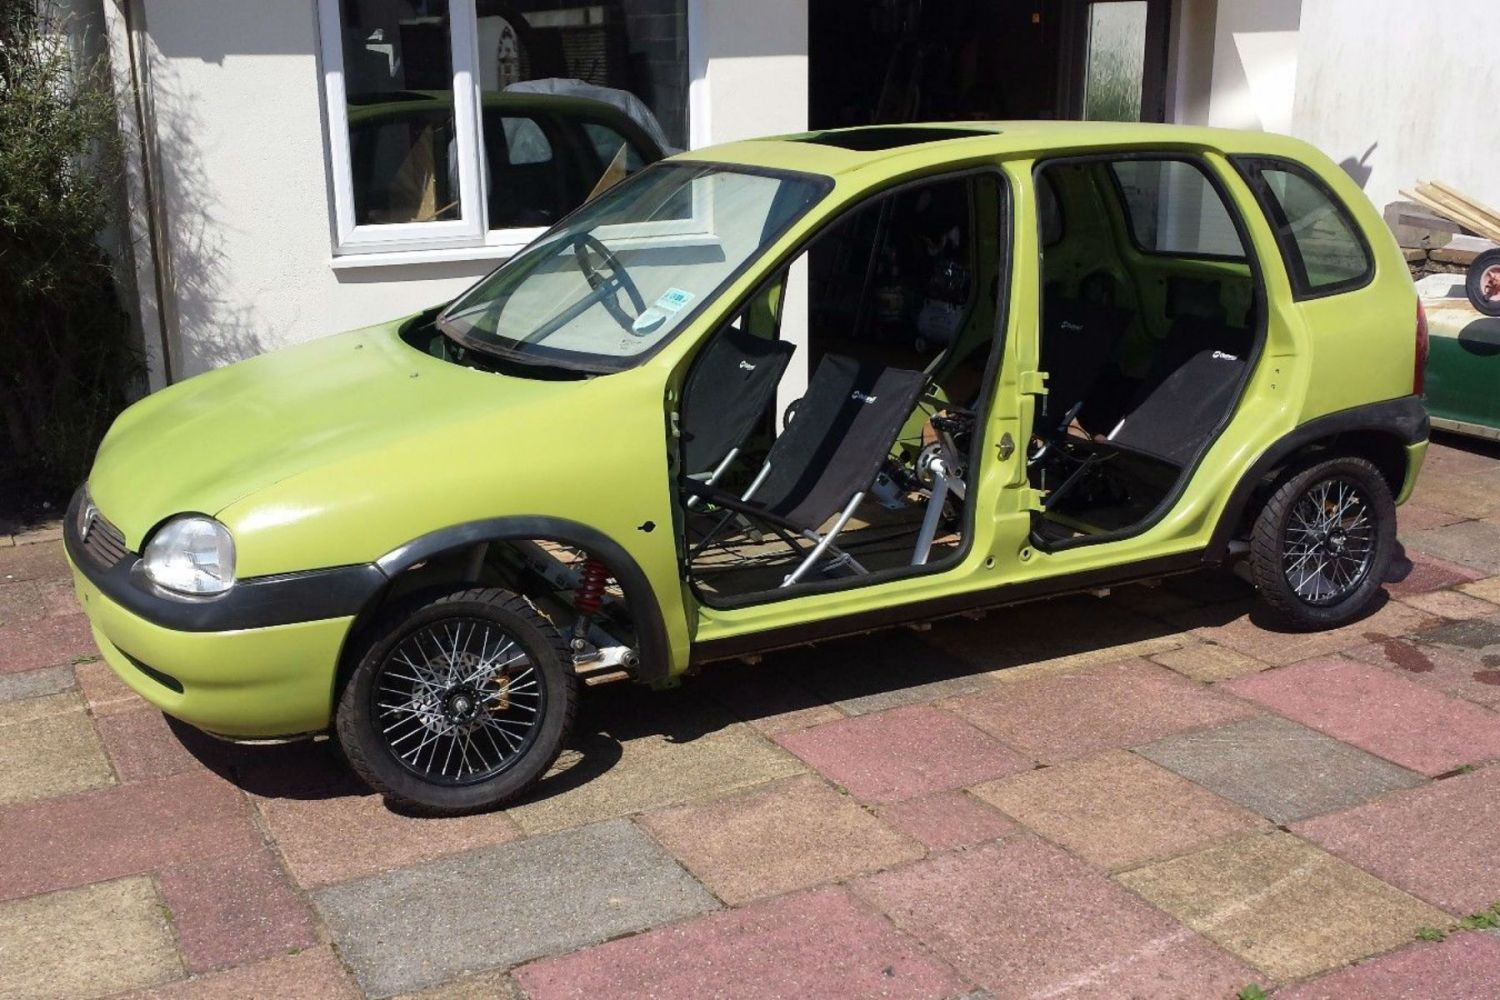 Chucklevision: pedal-powered Vauxhall Corsa for sale on eBay